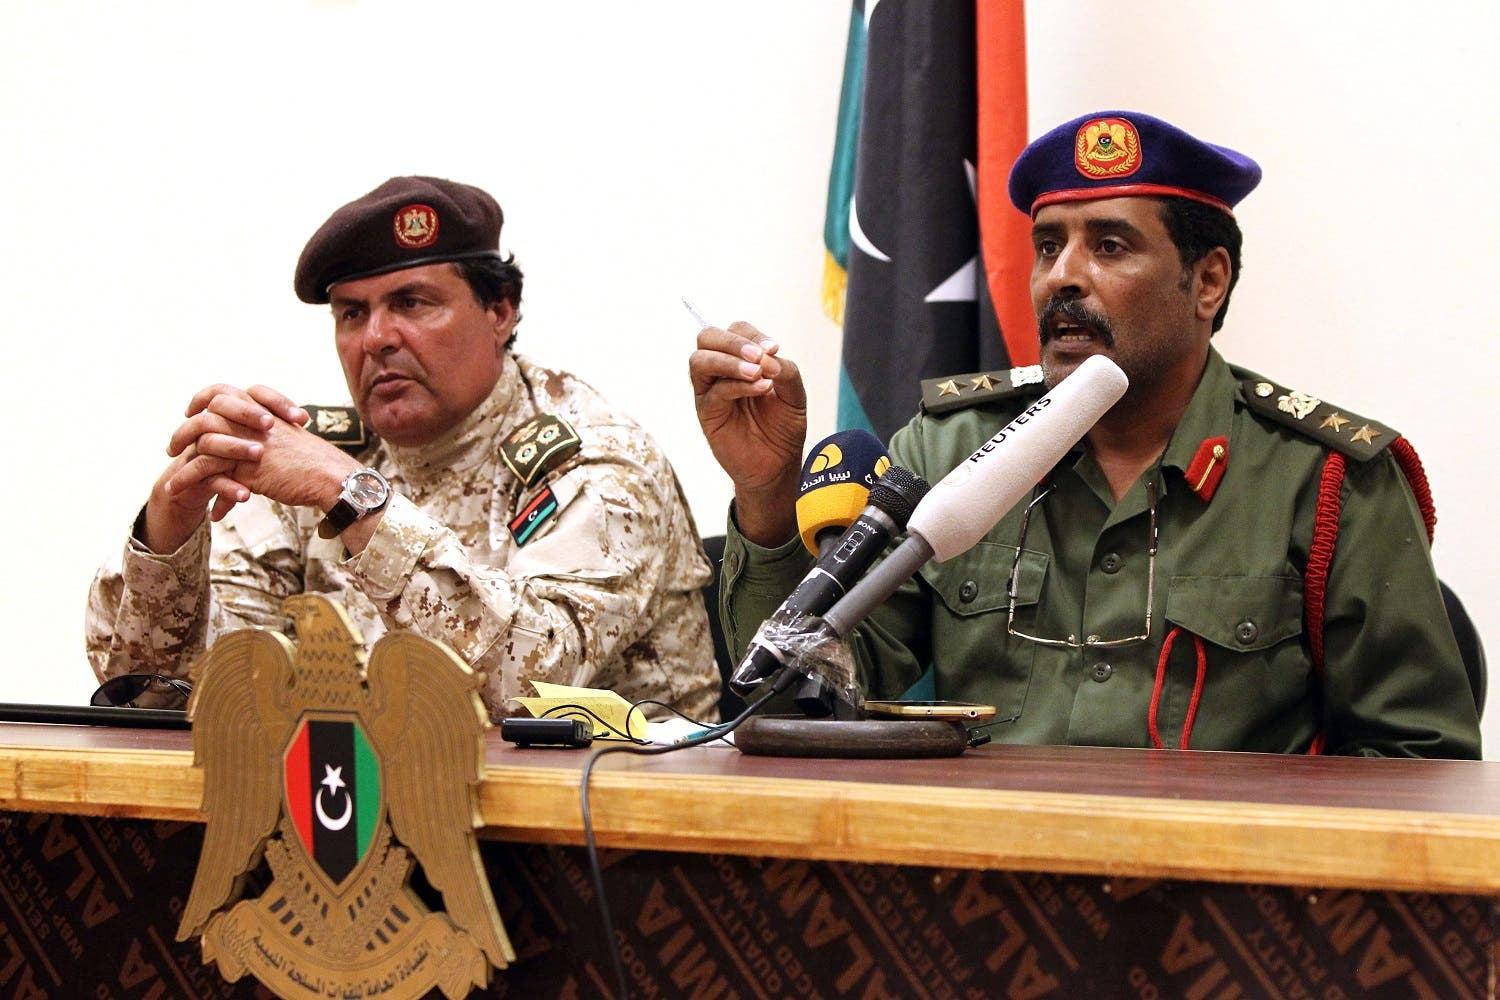 Colonel Muftah al-Muqarief (L), who heads oil guards loyal to Libyan military strongman General Khalifa Haftar Haftar, and Colonel Ahmad Mesmari, a spokesman for Haftar, hold a press conference at the Zueitina oil terminal on September 14, 2016. (AFP)